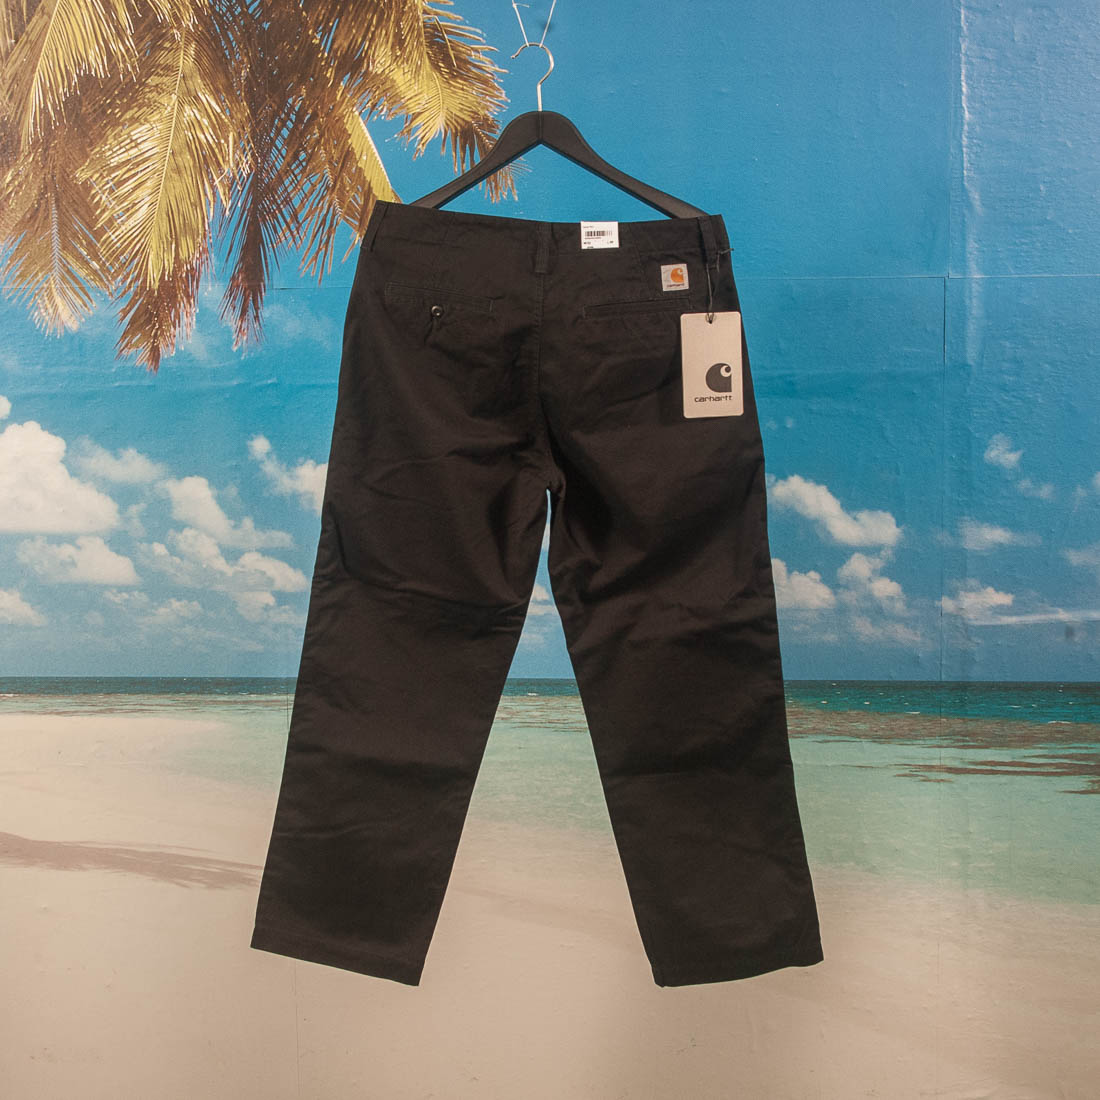 Carhartt WIP - Dallas Pant - Black Stone Washed